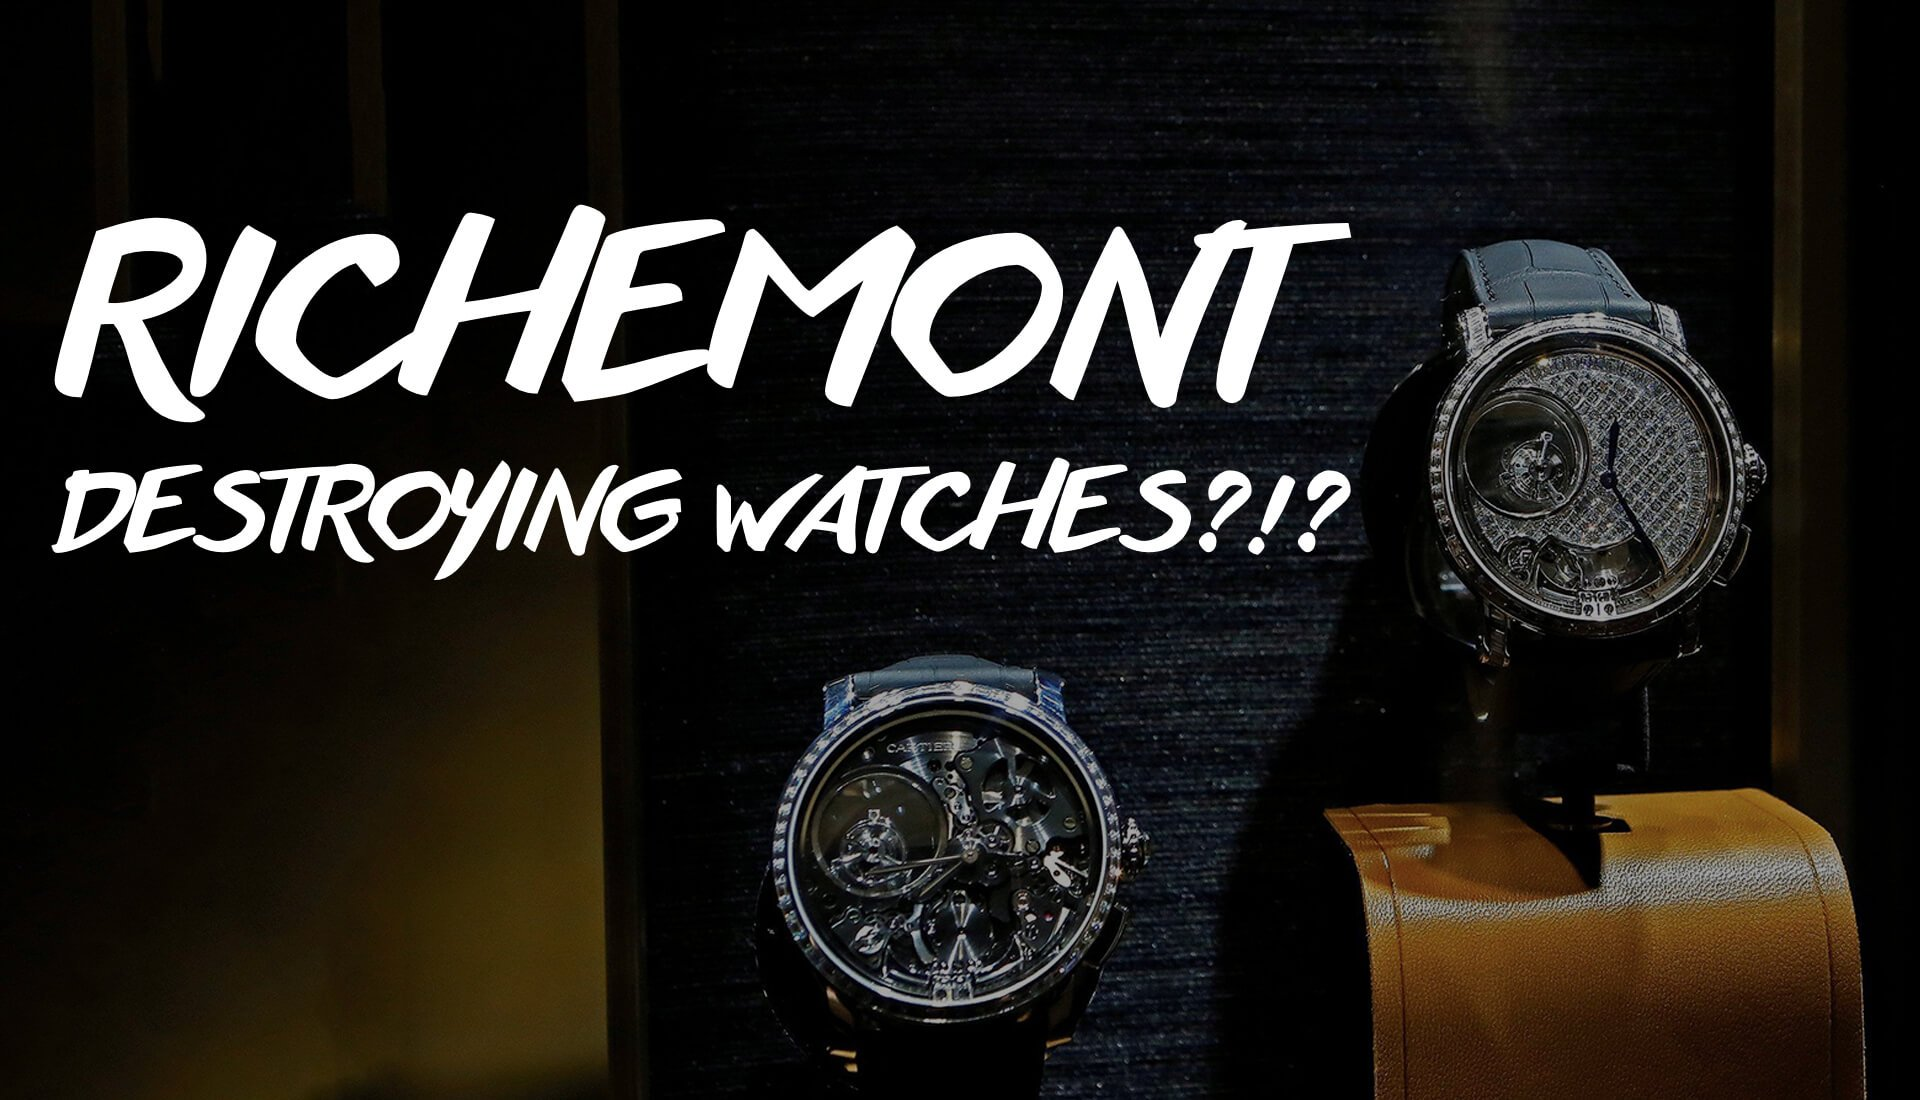 Liquor Run: Richemont Destroyed $500 Million of It's Own Watches